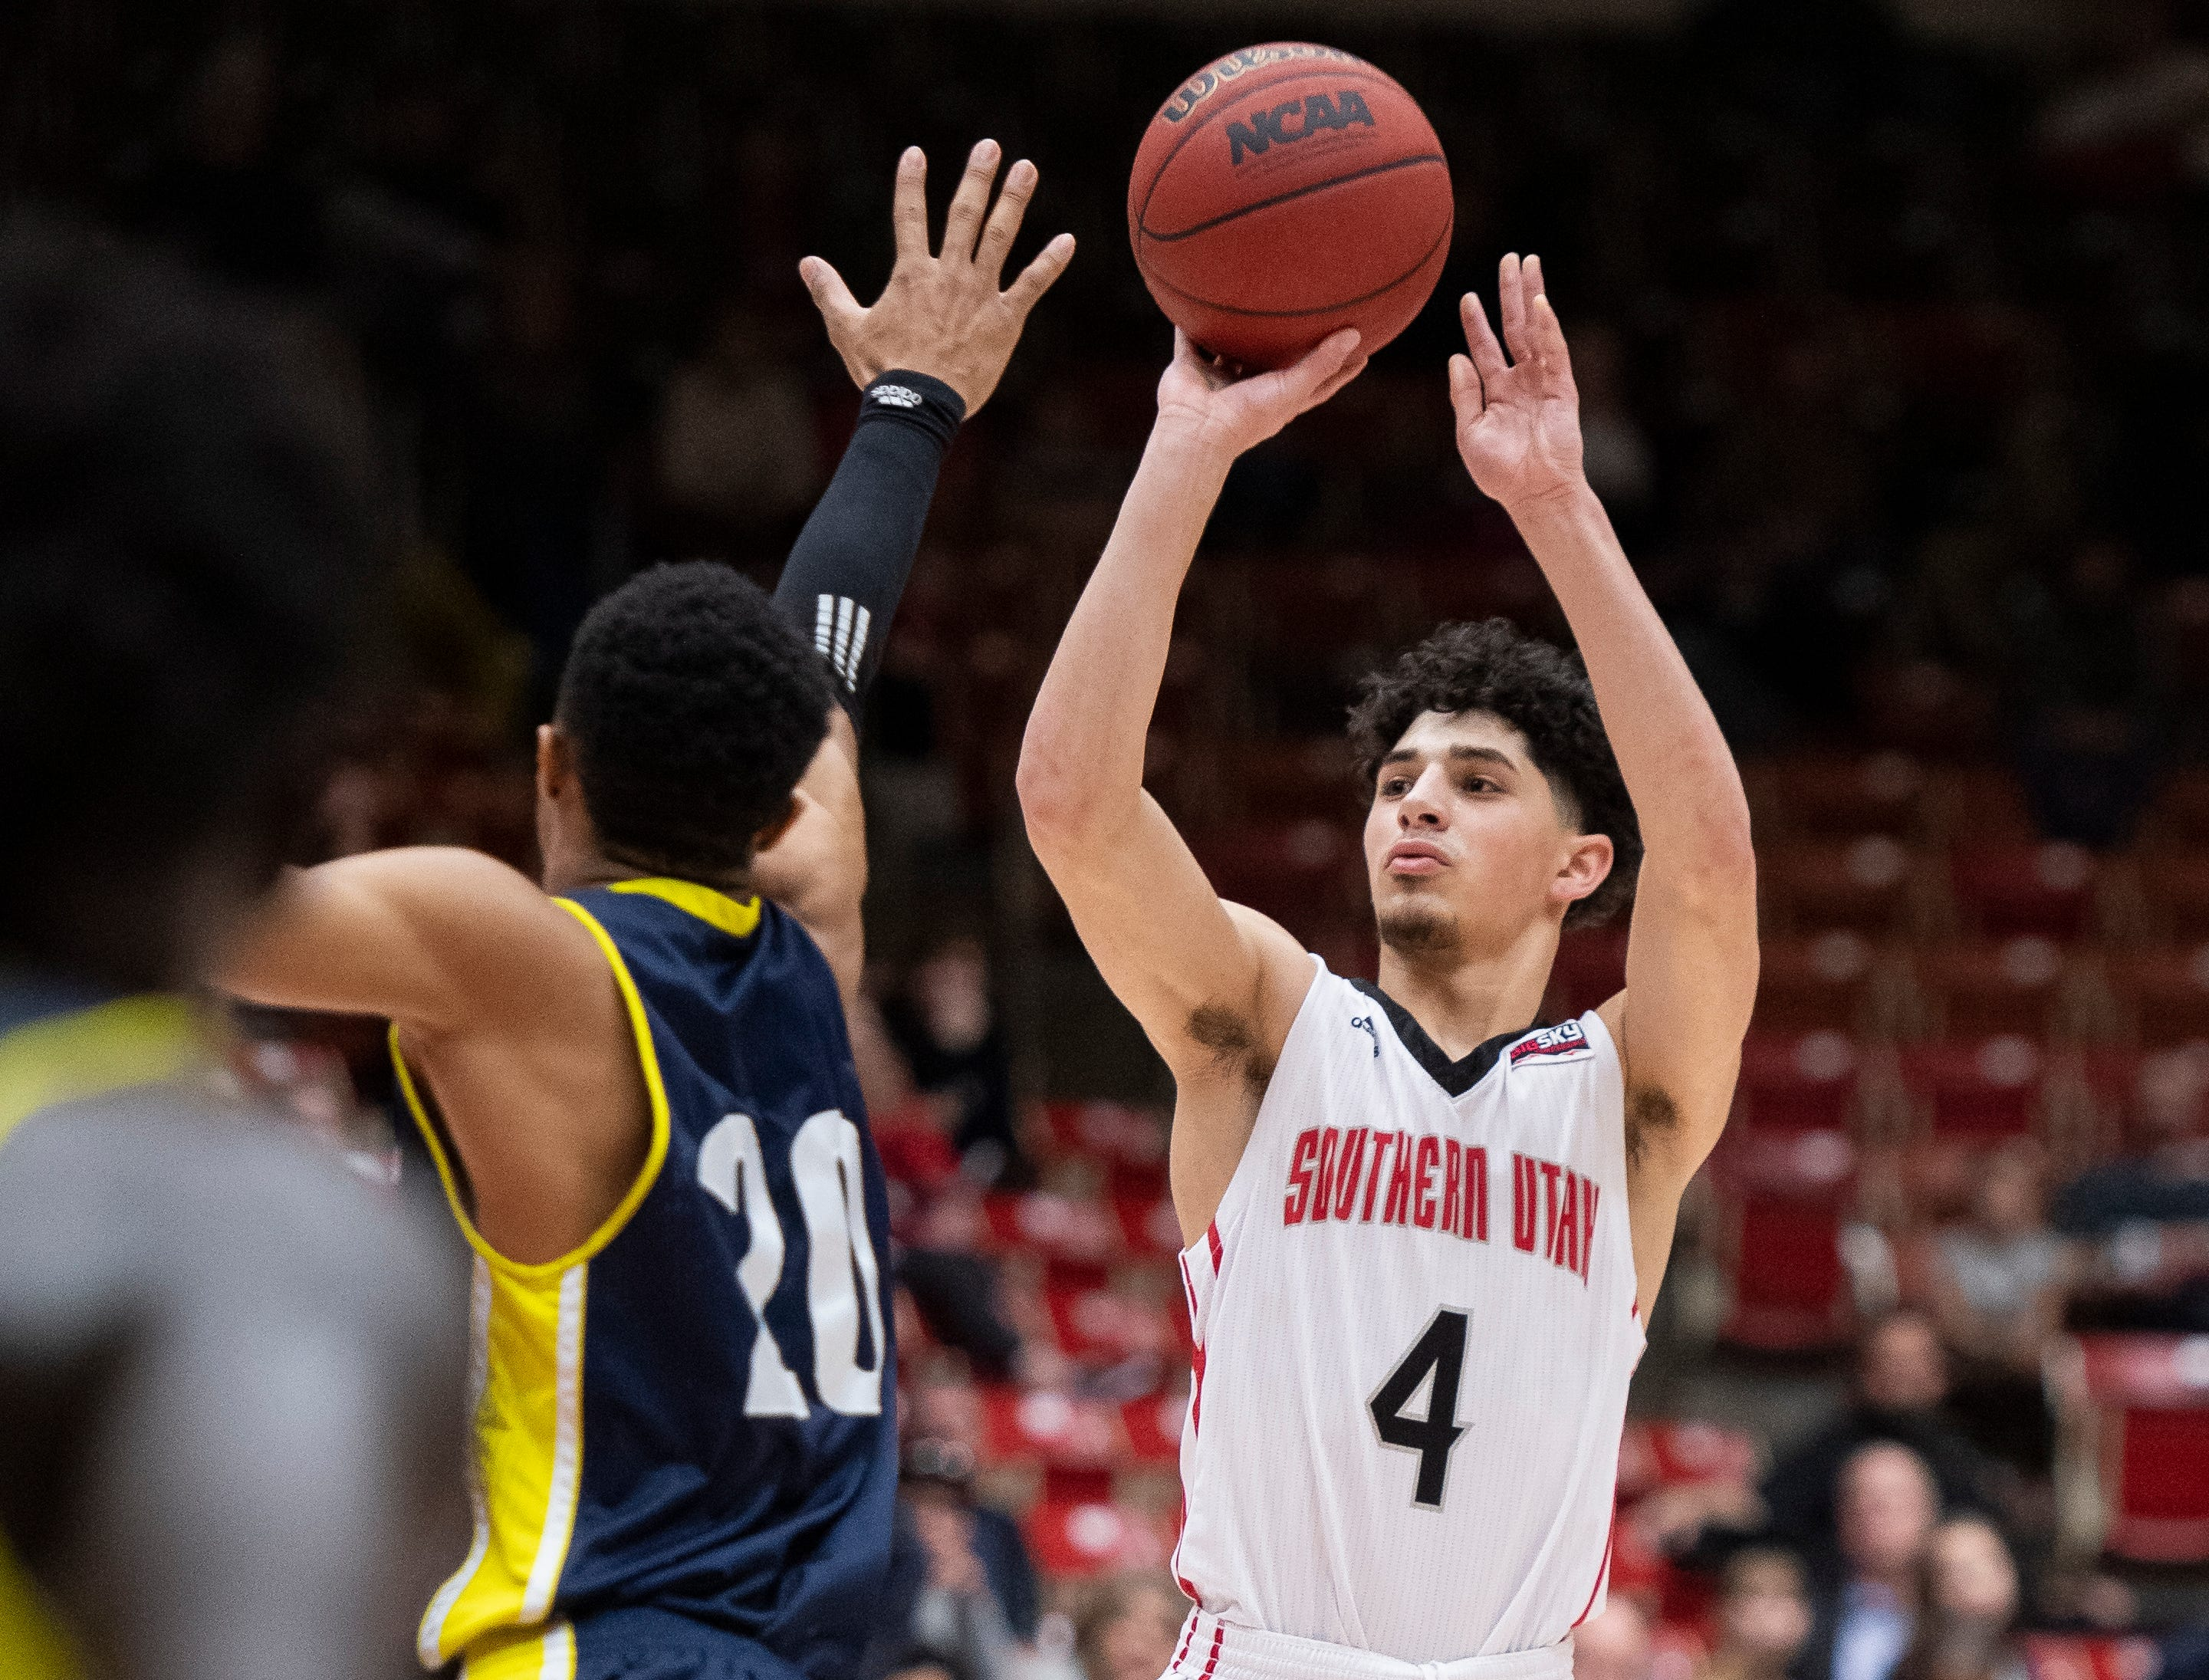 Southern Utah University sophomore Dre Marin (4) makes a three-point basket for the lead against rival Northern Arizona at the America First Event Center Saturday, January 12, 2019. SUU won, 84-82.